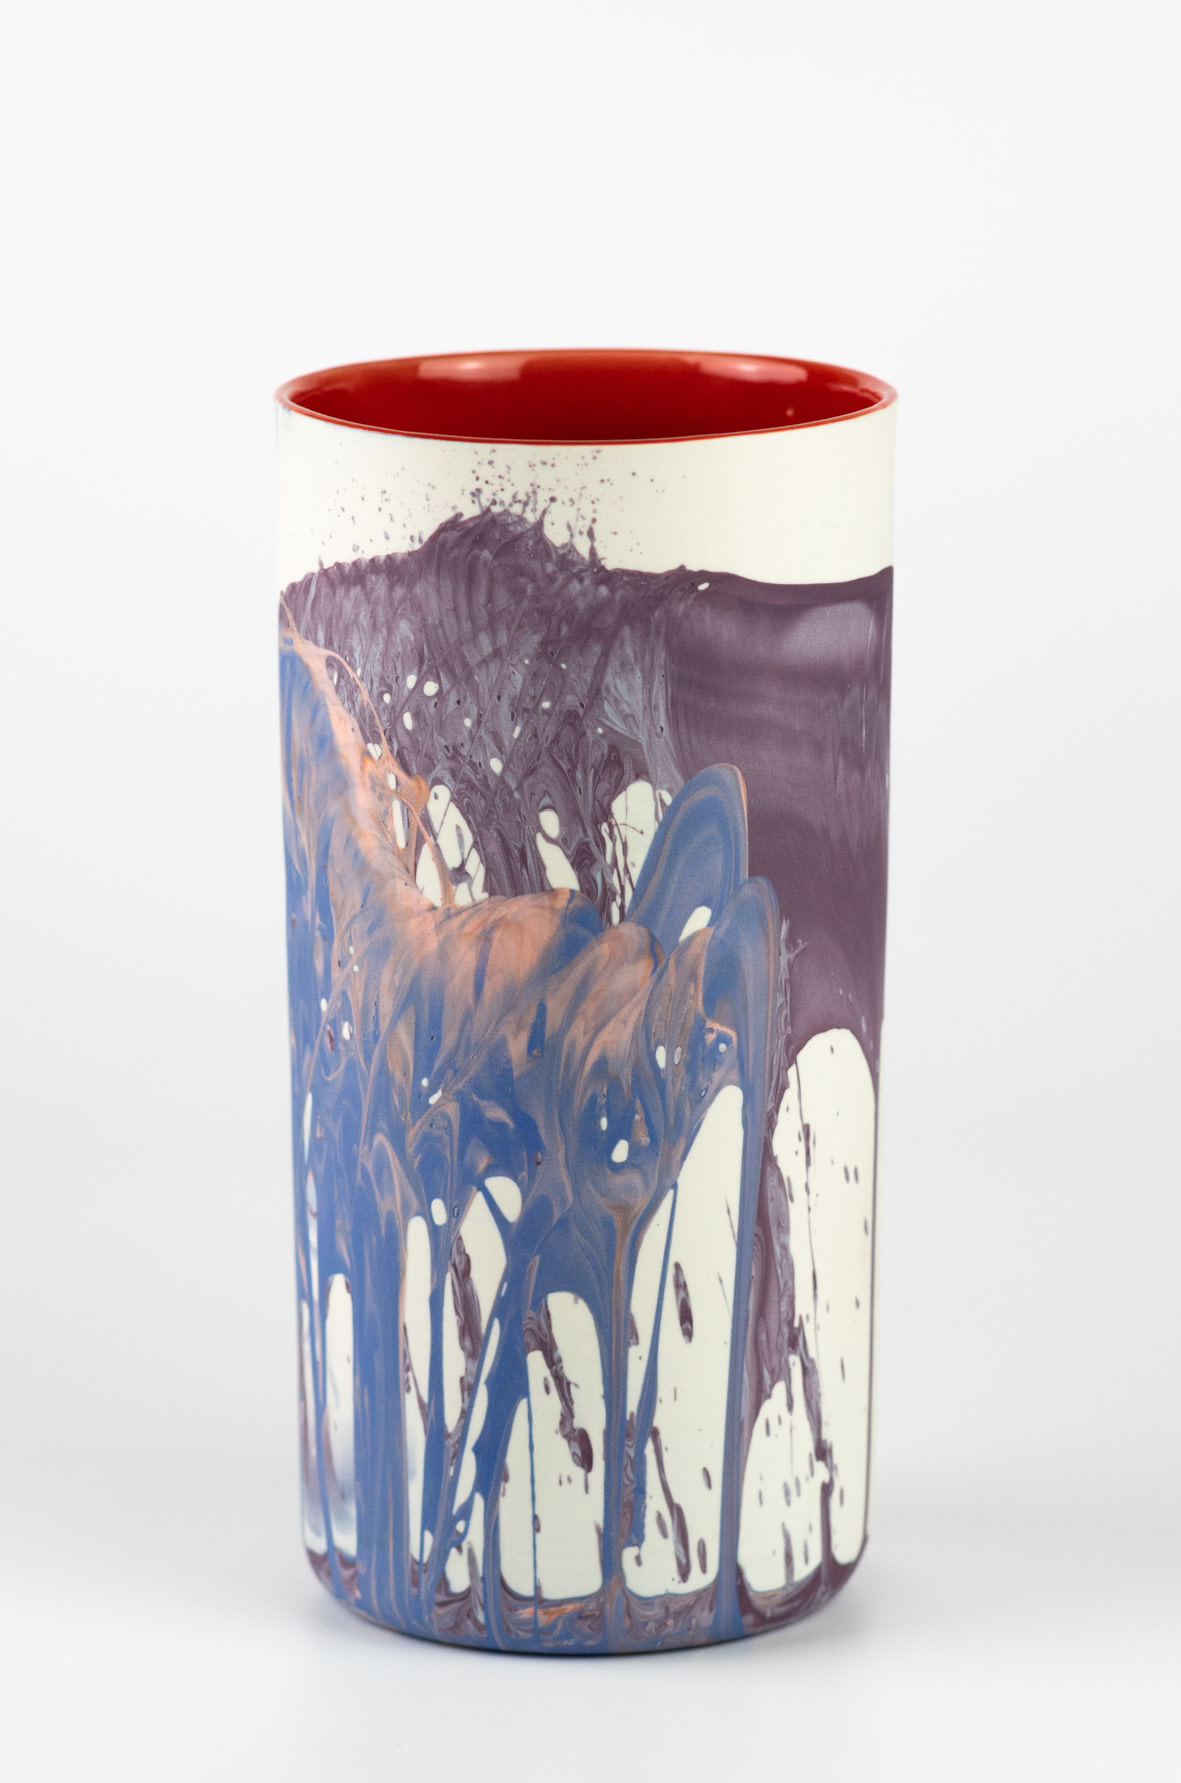 "<span class=""link fancybox-details-link""><a href=""/artists/219-james-pegg/works/6572-james-pegg-fountouki-vase-2019/"">View Detail Page</a></span><div class=""artist""><strong>James Pegg</strong></div> <div class=""title""><em>Fountouki Vase</em>, 2019</div> <div class=""medium"">action-cast stained porcelain with glazed interior</div><div class=""price"">£145.00</div><div class=""copyright_line"">OwnArt: £ 14.50 x 10 months, 0% APR</div>"